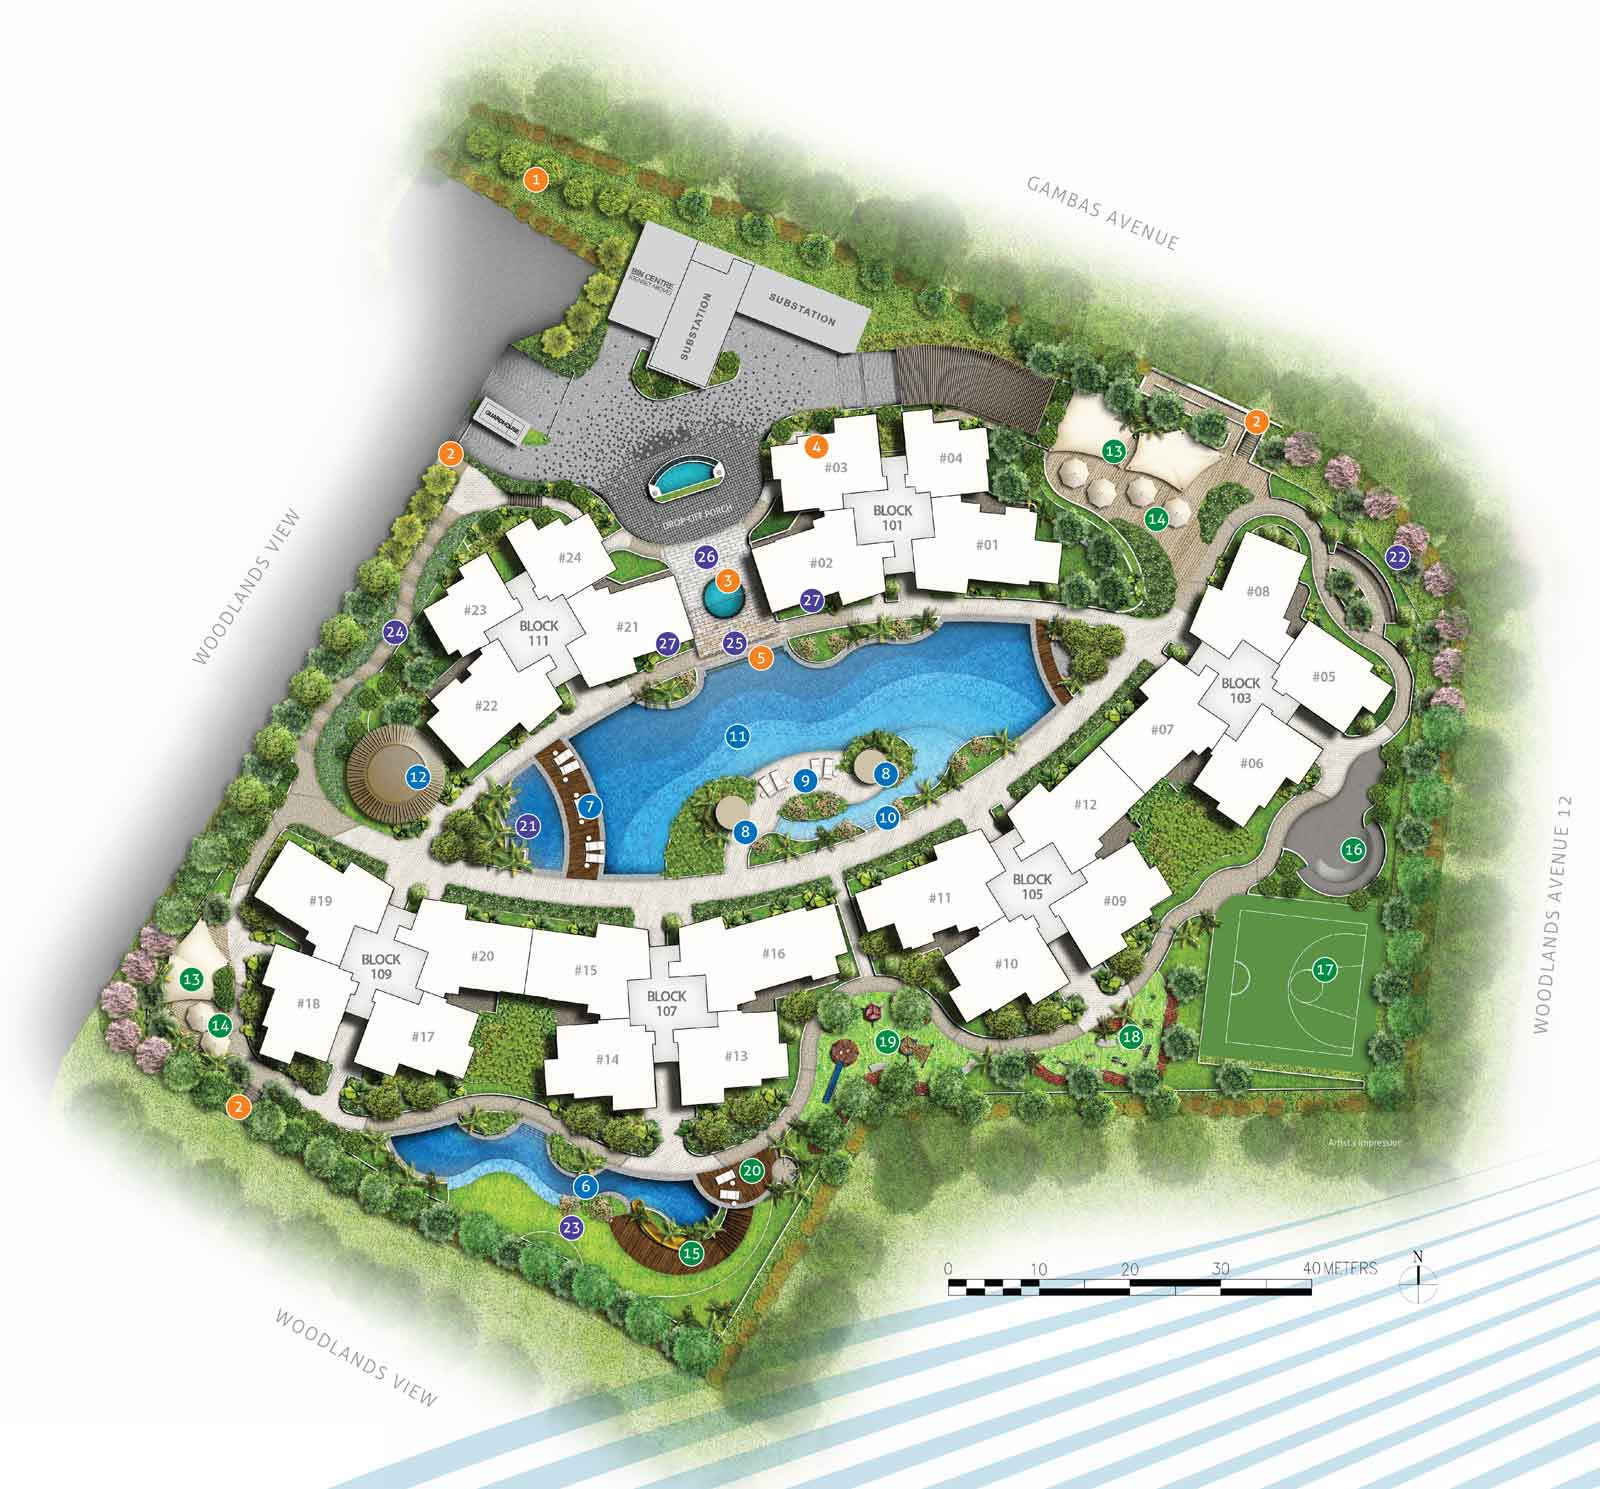 Site Plan for NorthWave